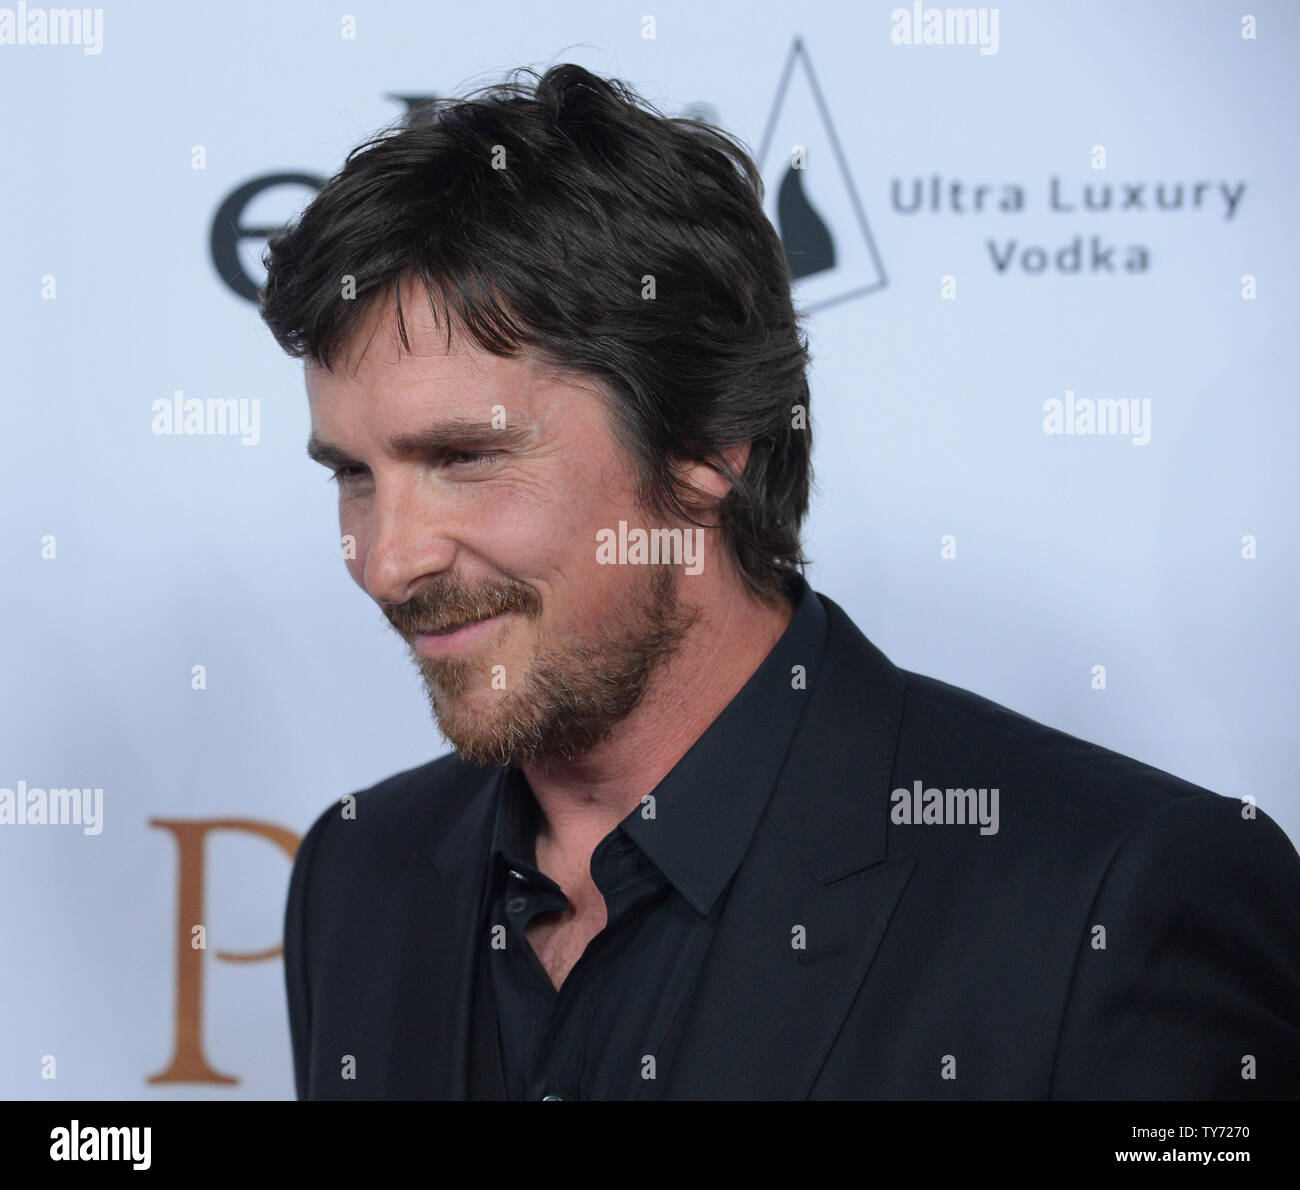 Cast member Christian Bale attends the premiere of the